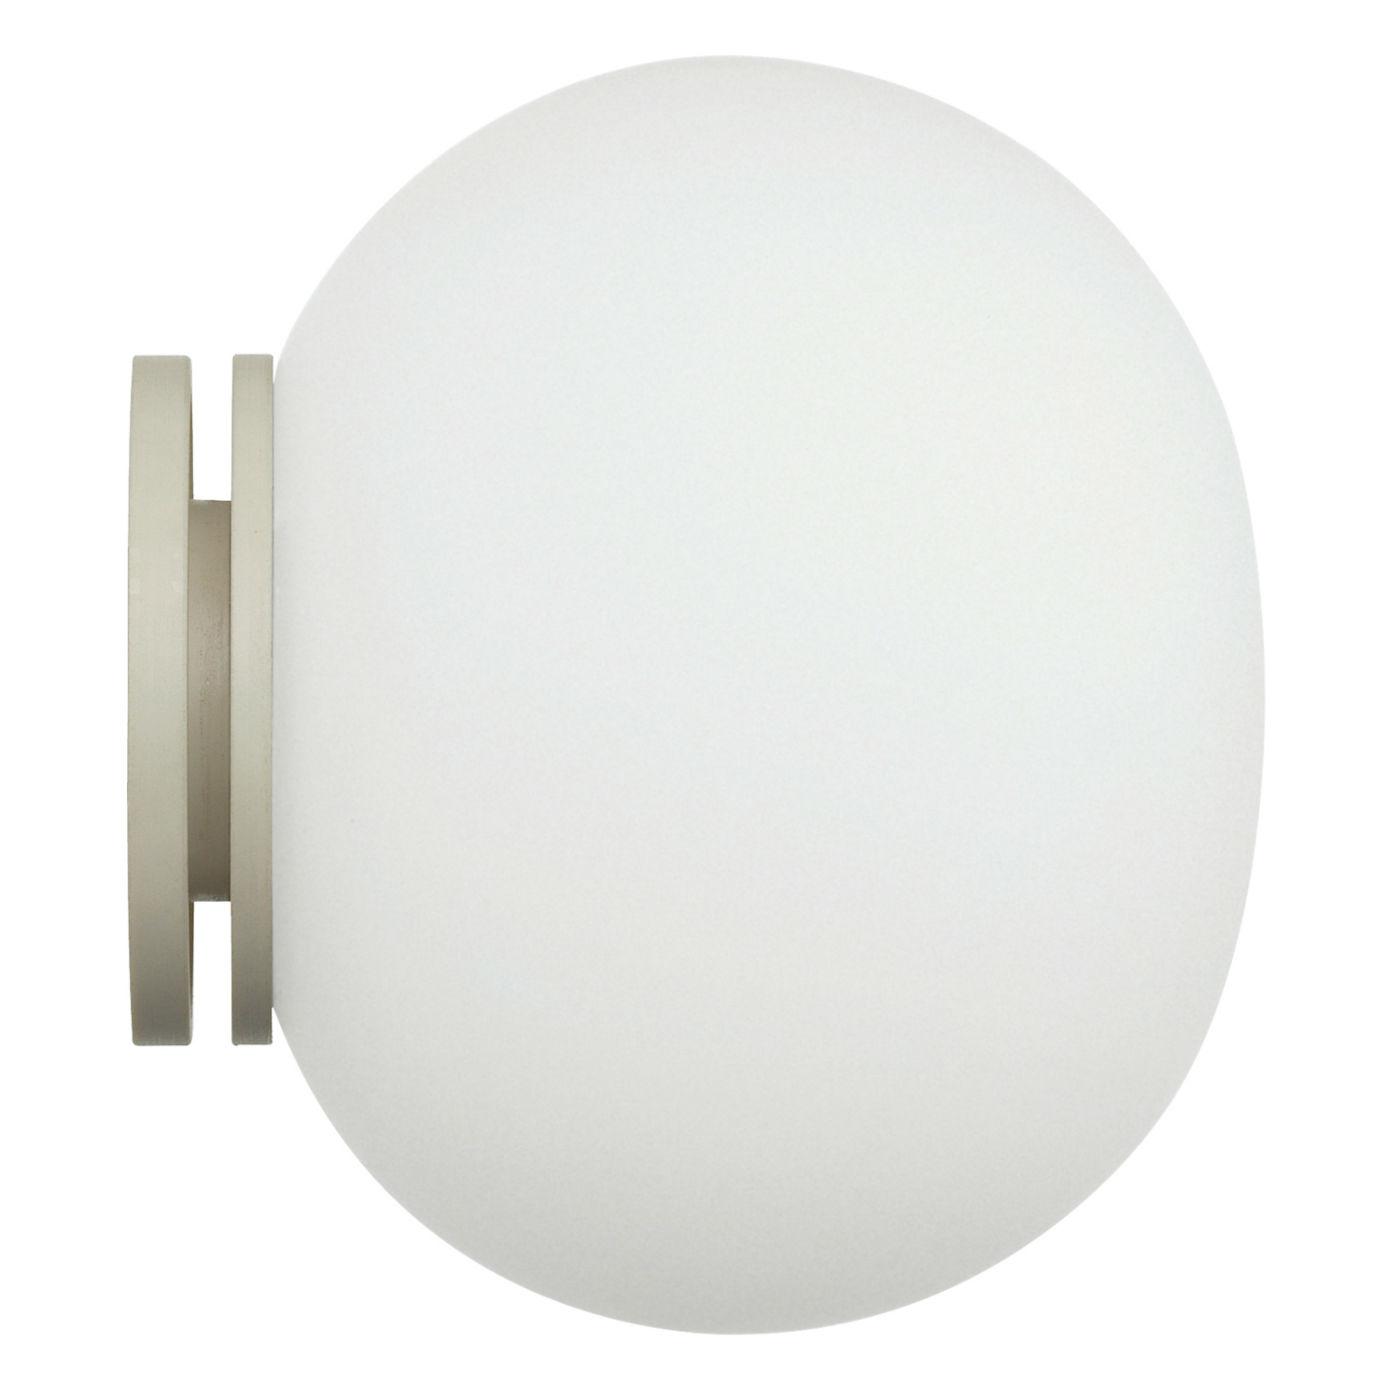 Glo Ball Mini C/W Wall lamp/ceiling lamp for mirror 11,2cm G9 20W - white opal